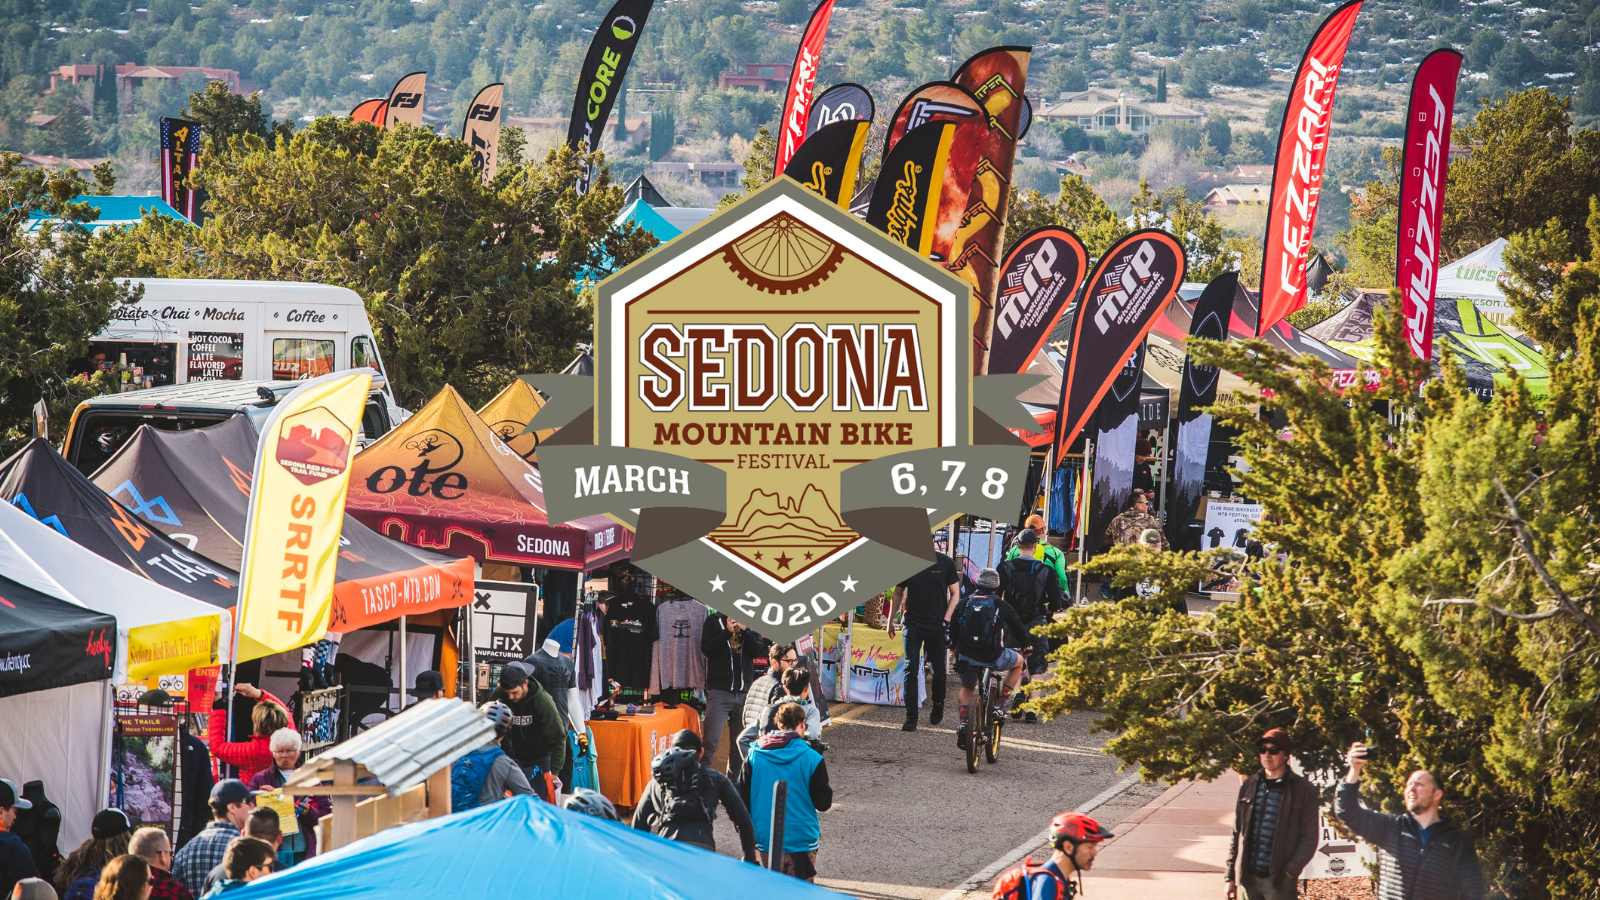 Sedona Mountain Bike Festival logo over image of vendor tents and flags